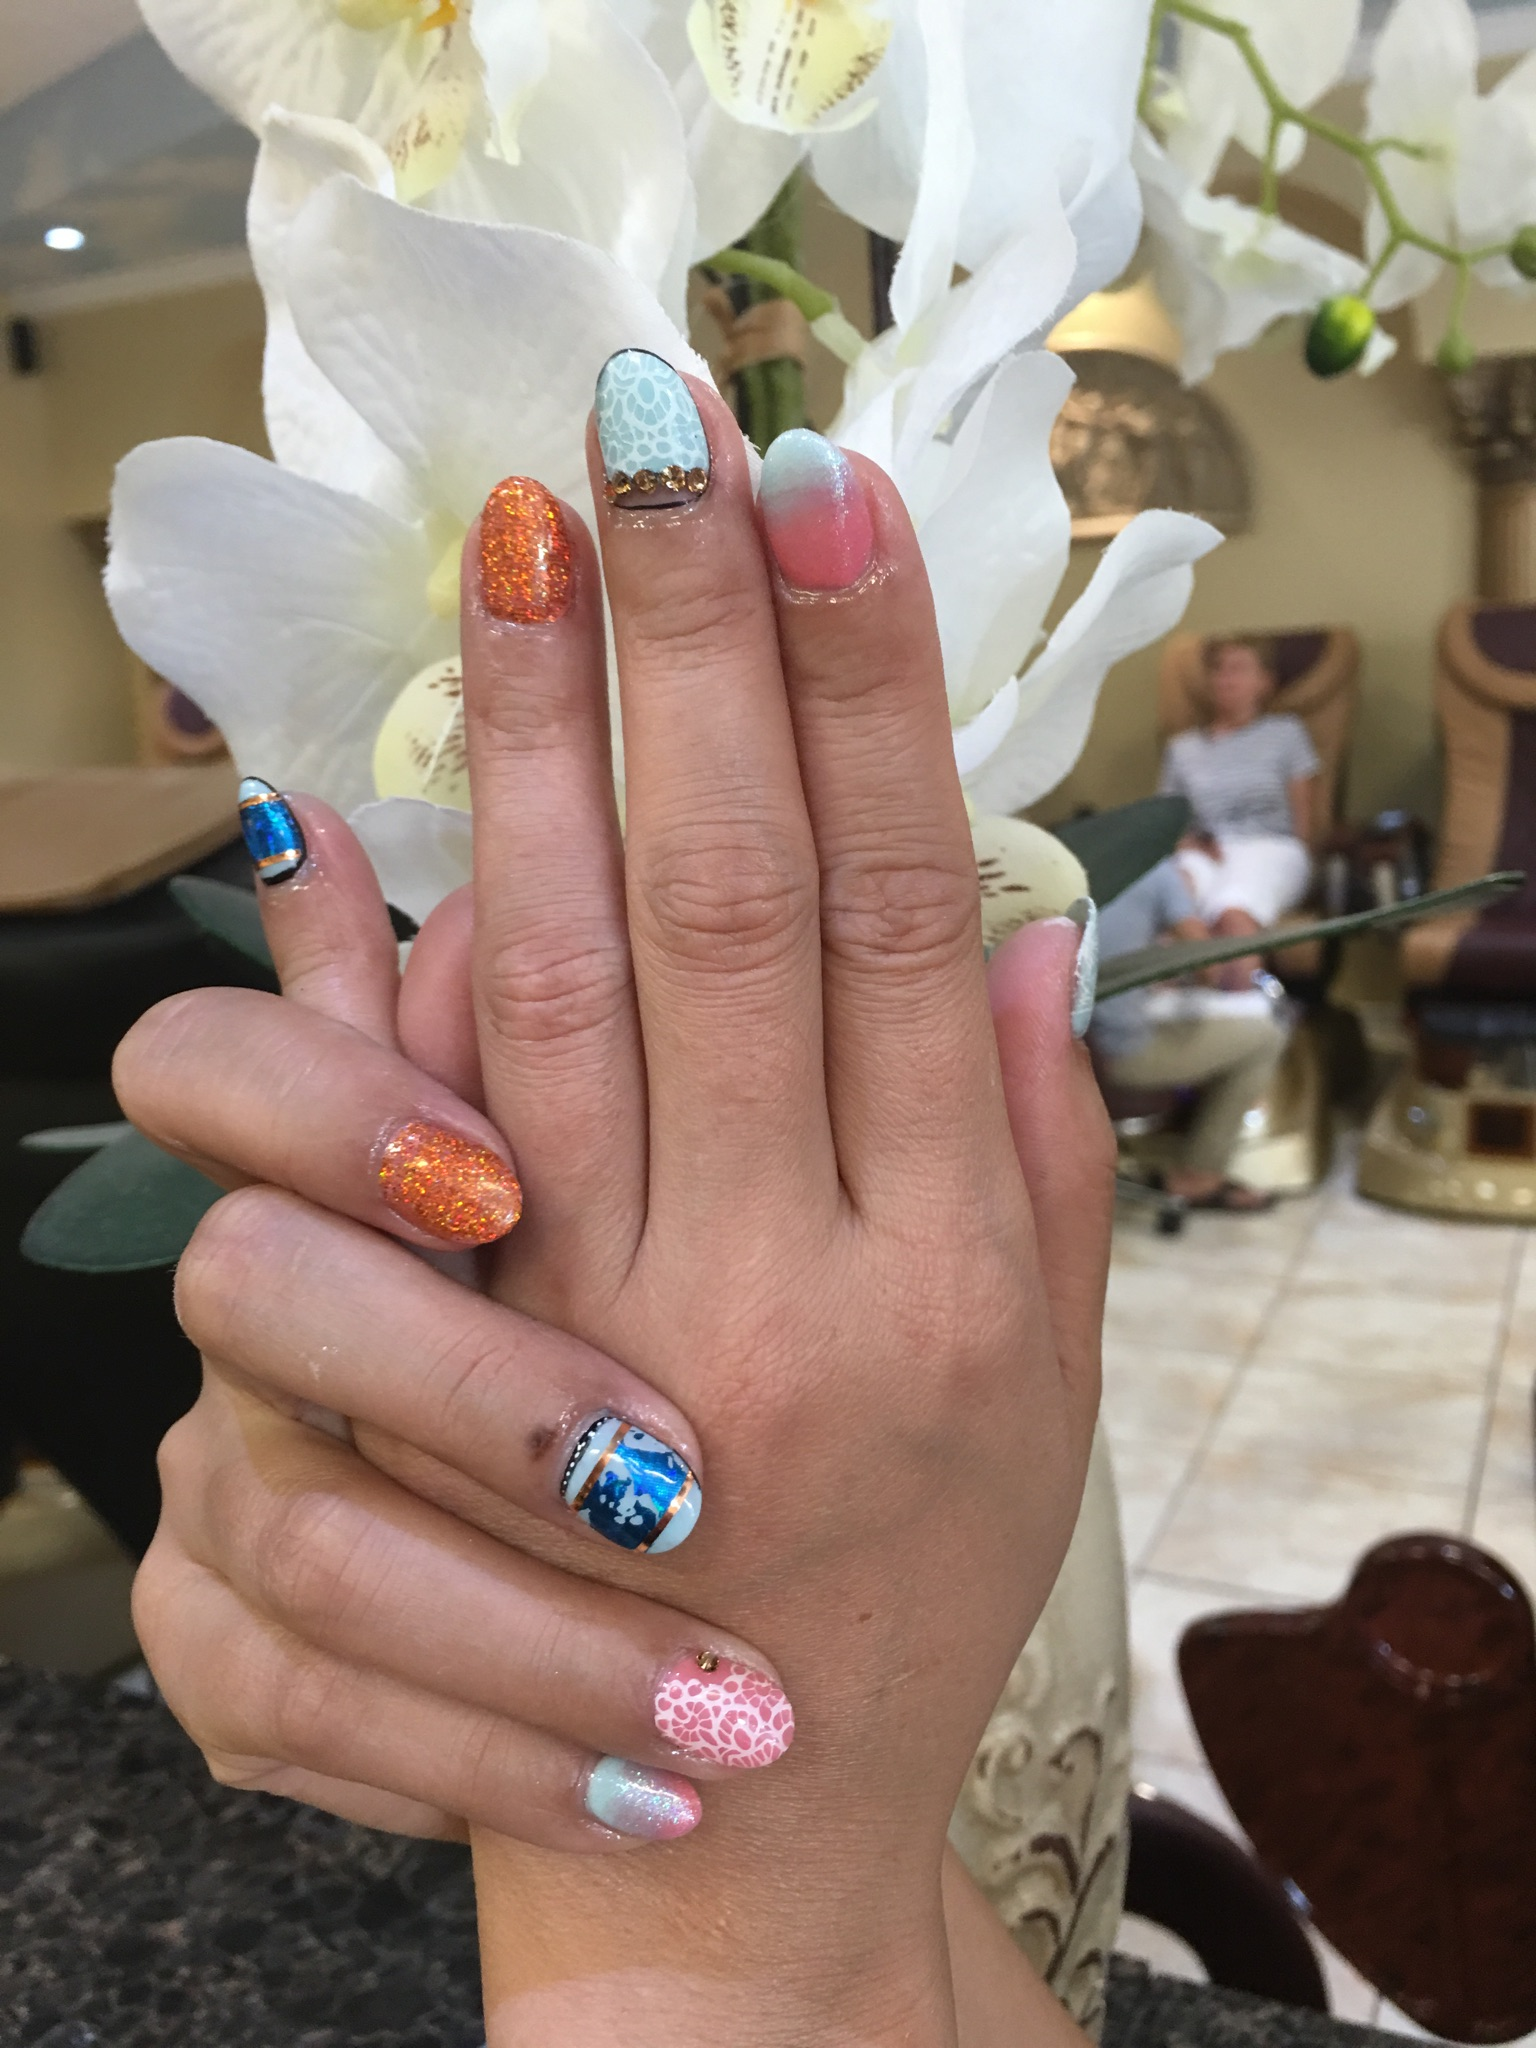 Diva nail salon sarasota fl 34238 for Ab nail salon sarasota